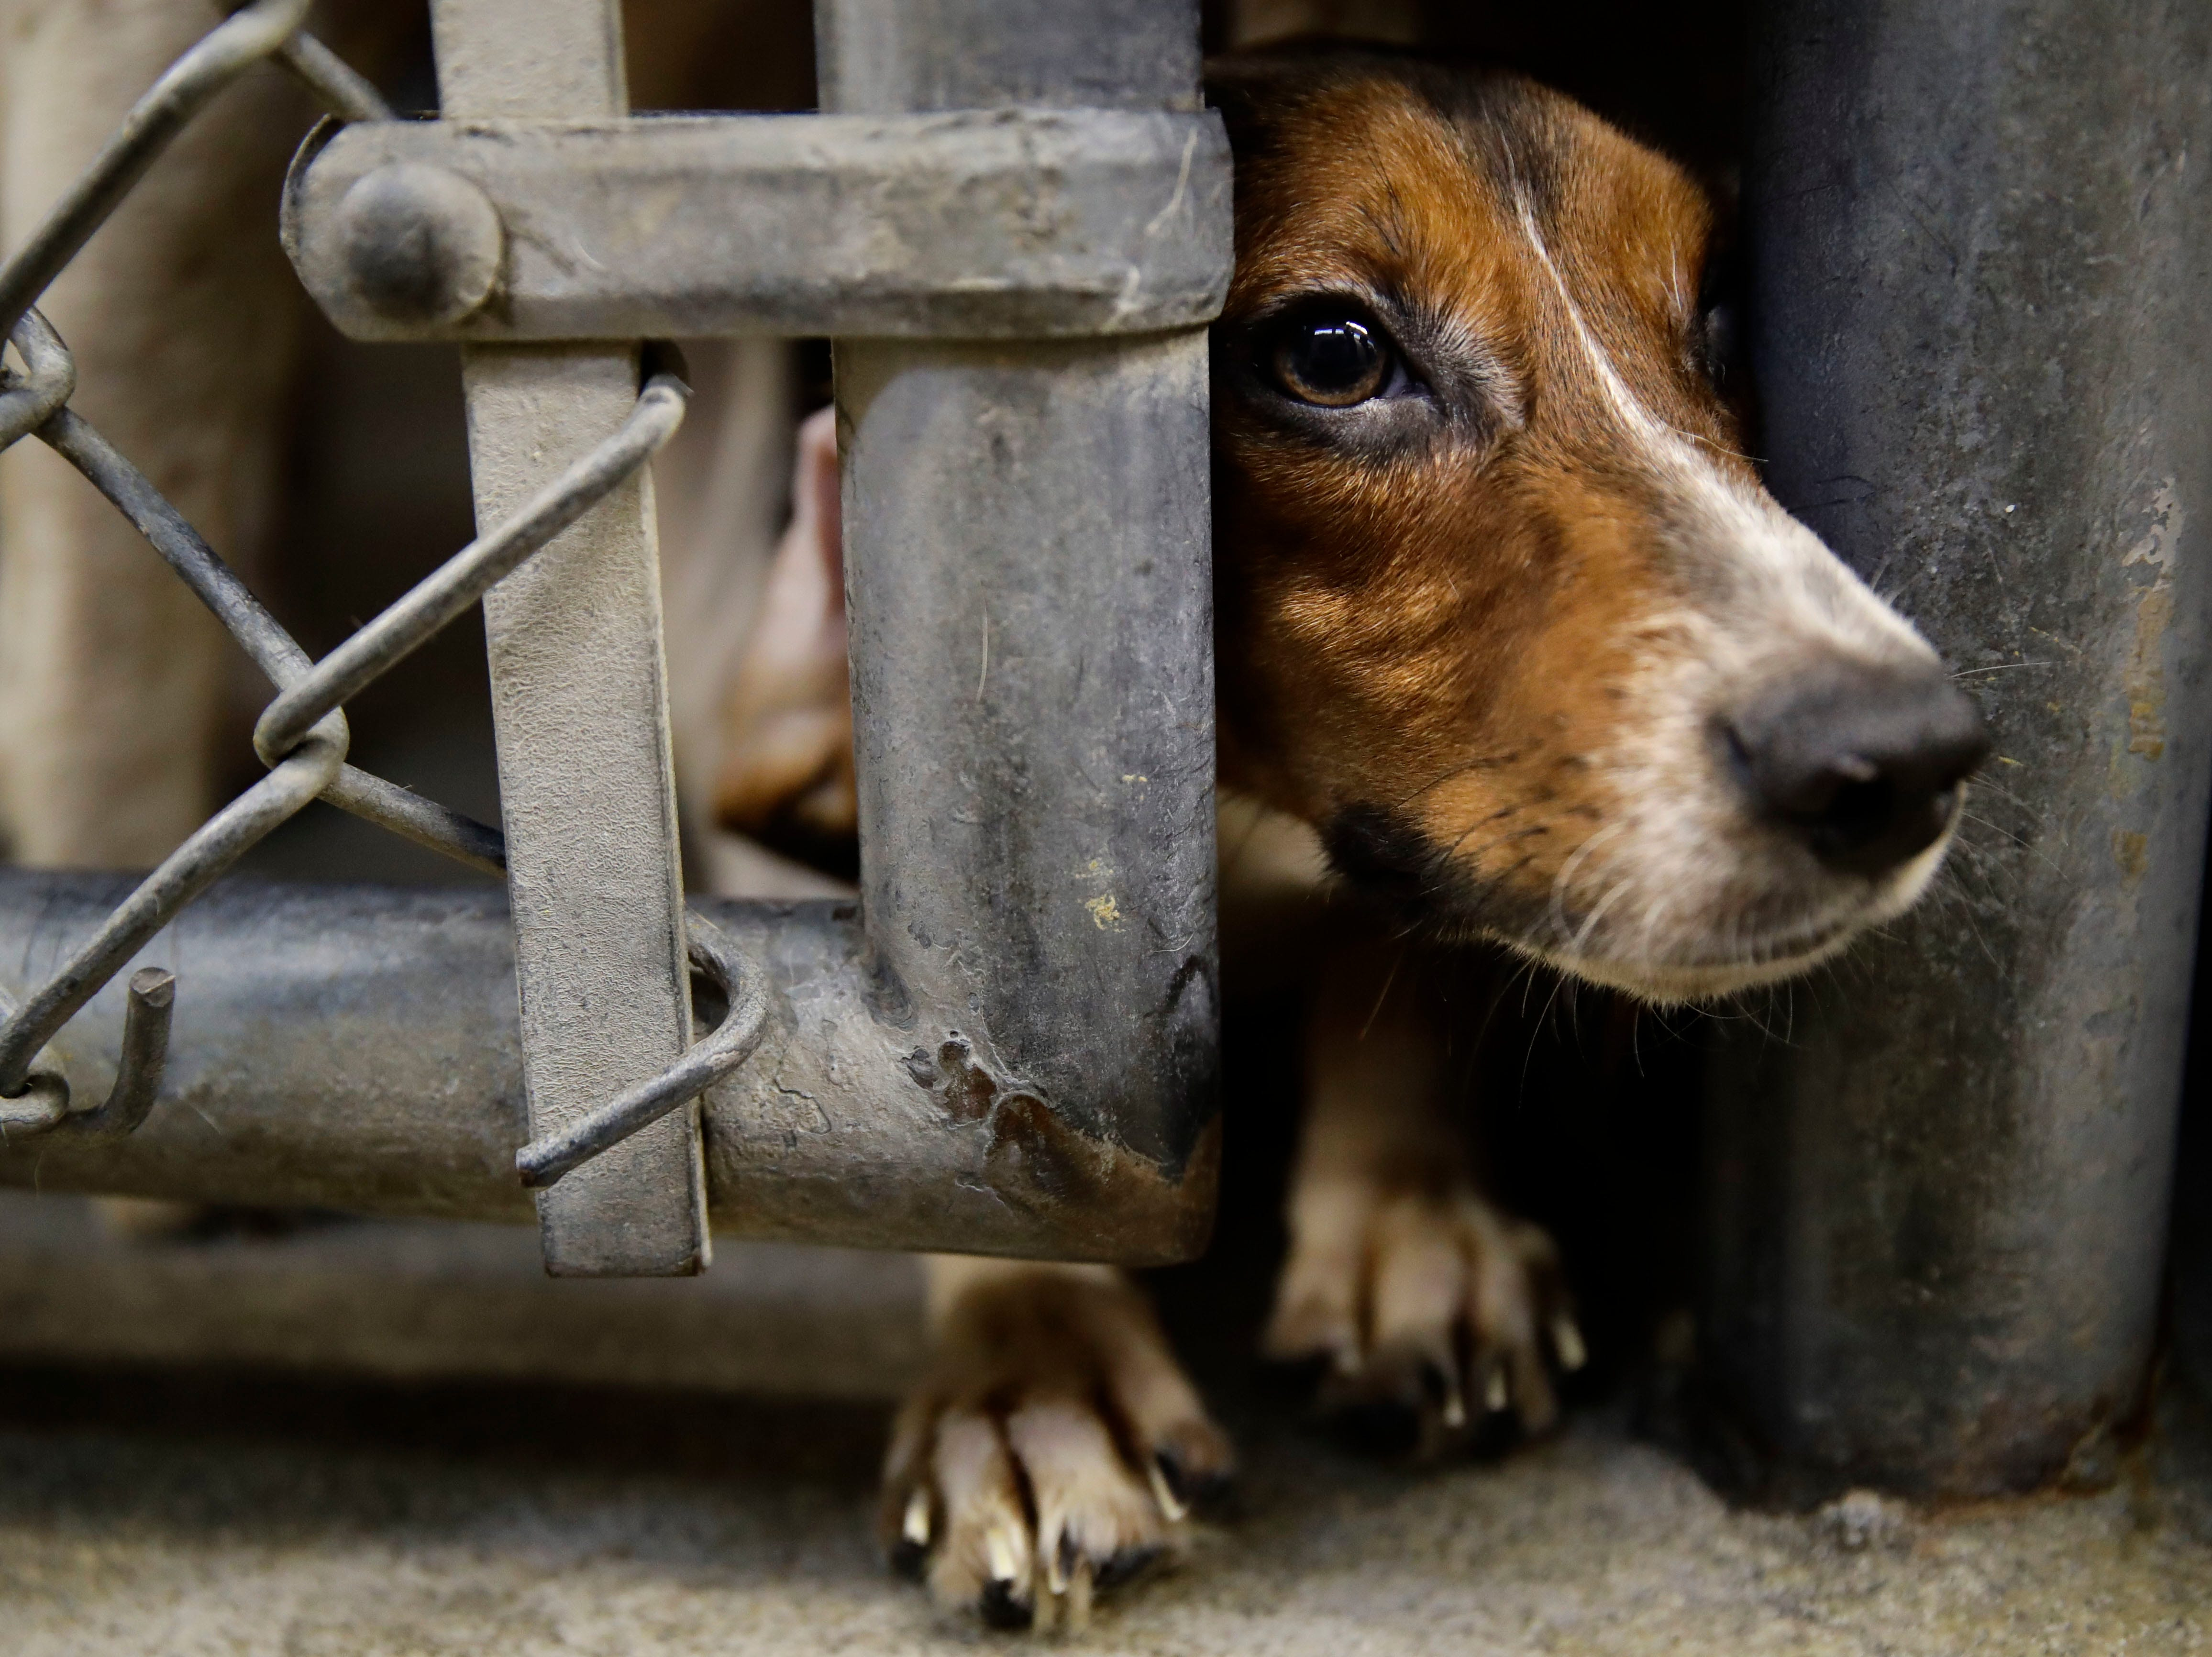 A rescued beagle peers out from its kennel at the The Lehigh County Humane Society in Allentown, Pa., Monday, Oct. 8, 2018. Animal welfare workers removed 71 beagles from a cramped house in rural Pennsylvania, where officials say a woman had been breeding them without a license before she died last month. (AP Photo/Matt Rourke)